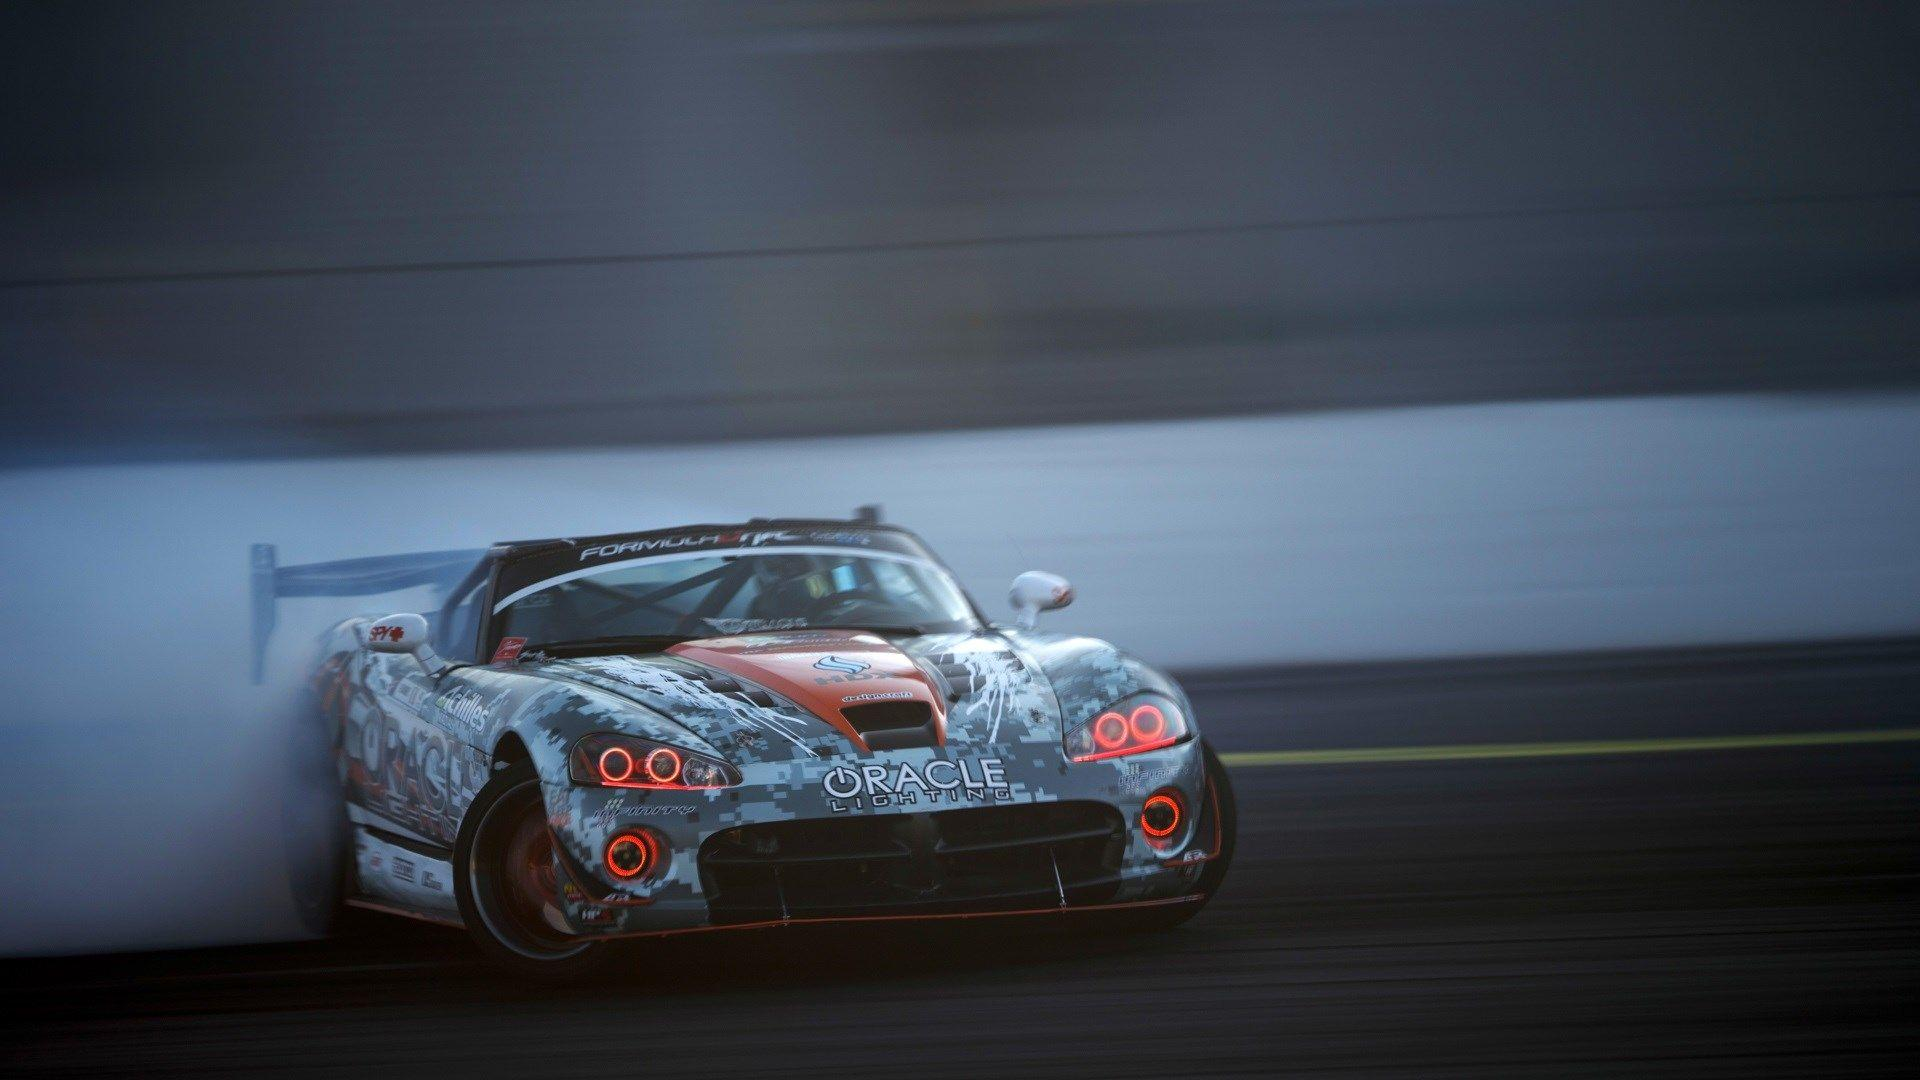 Awesome Dodge Viper Wallpaper 23697 1920x1080 Px HDWallSource